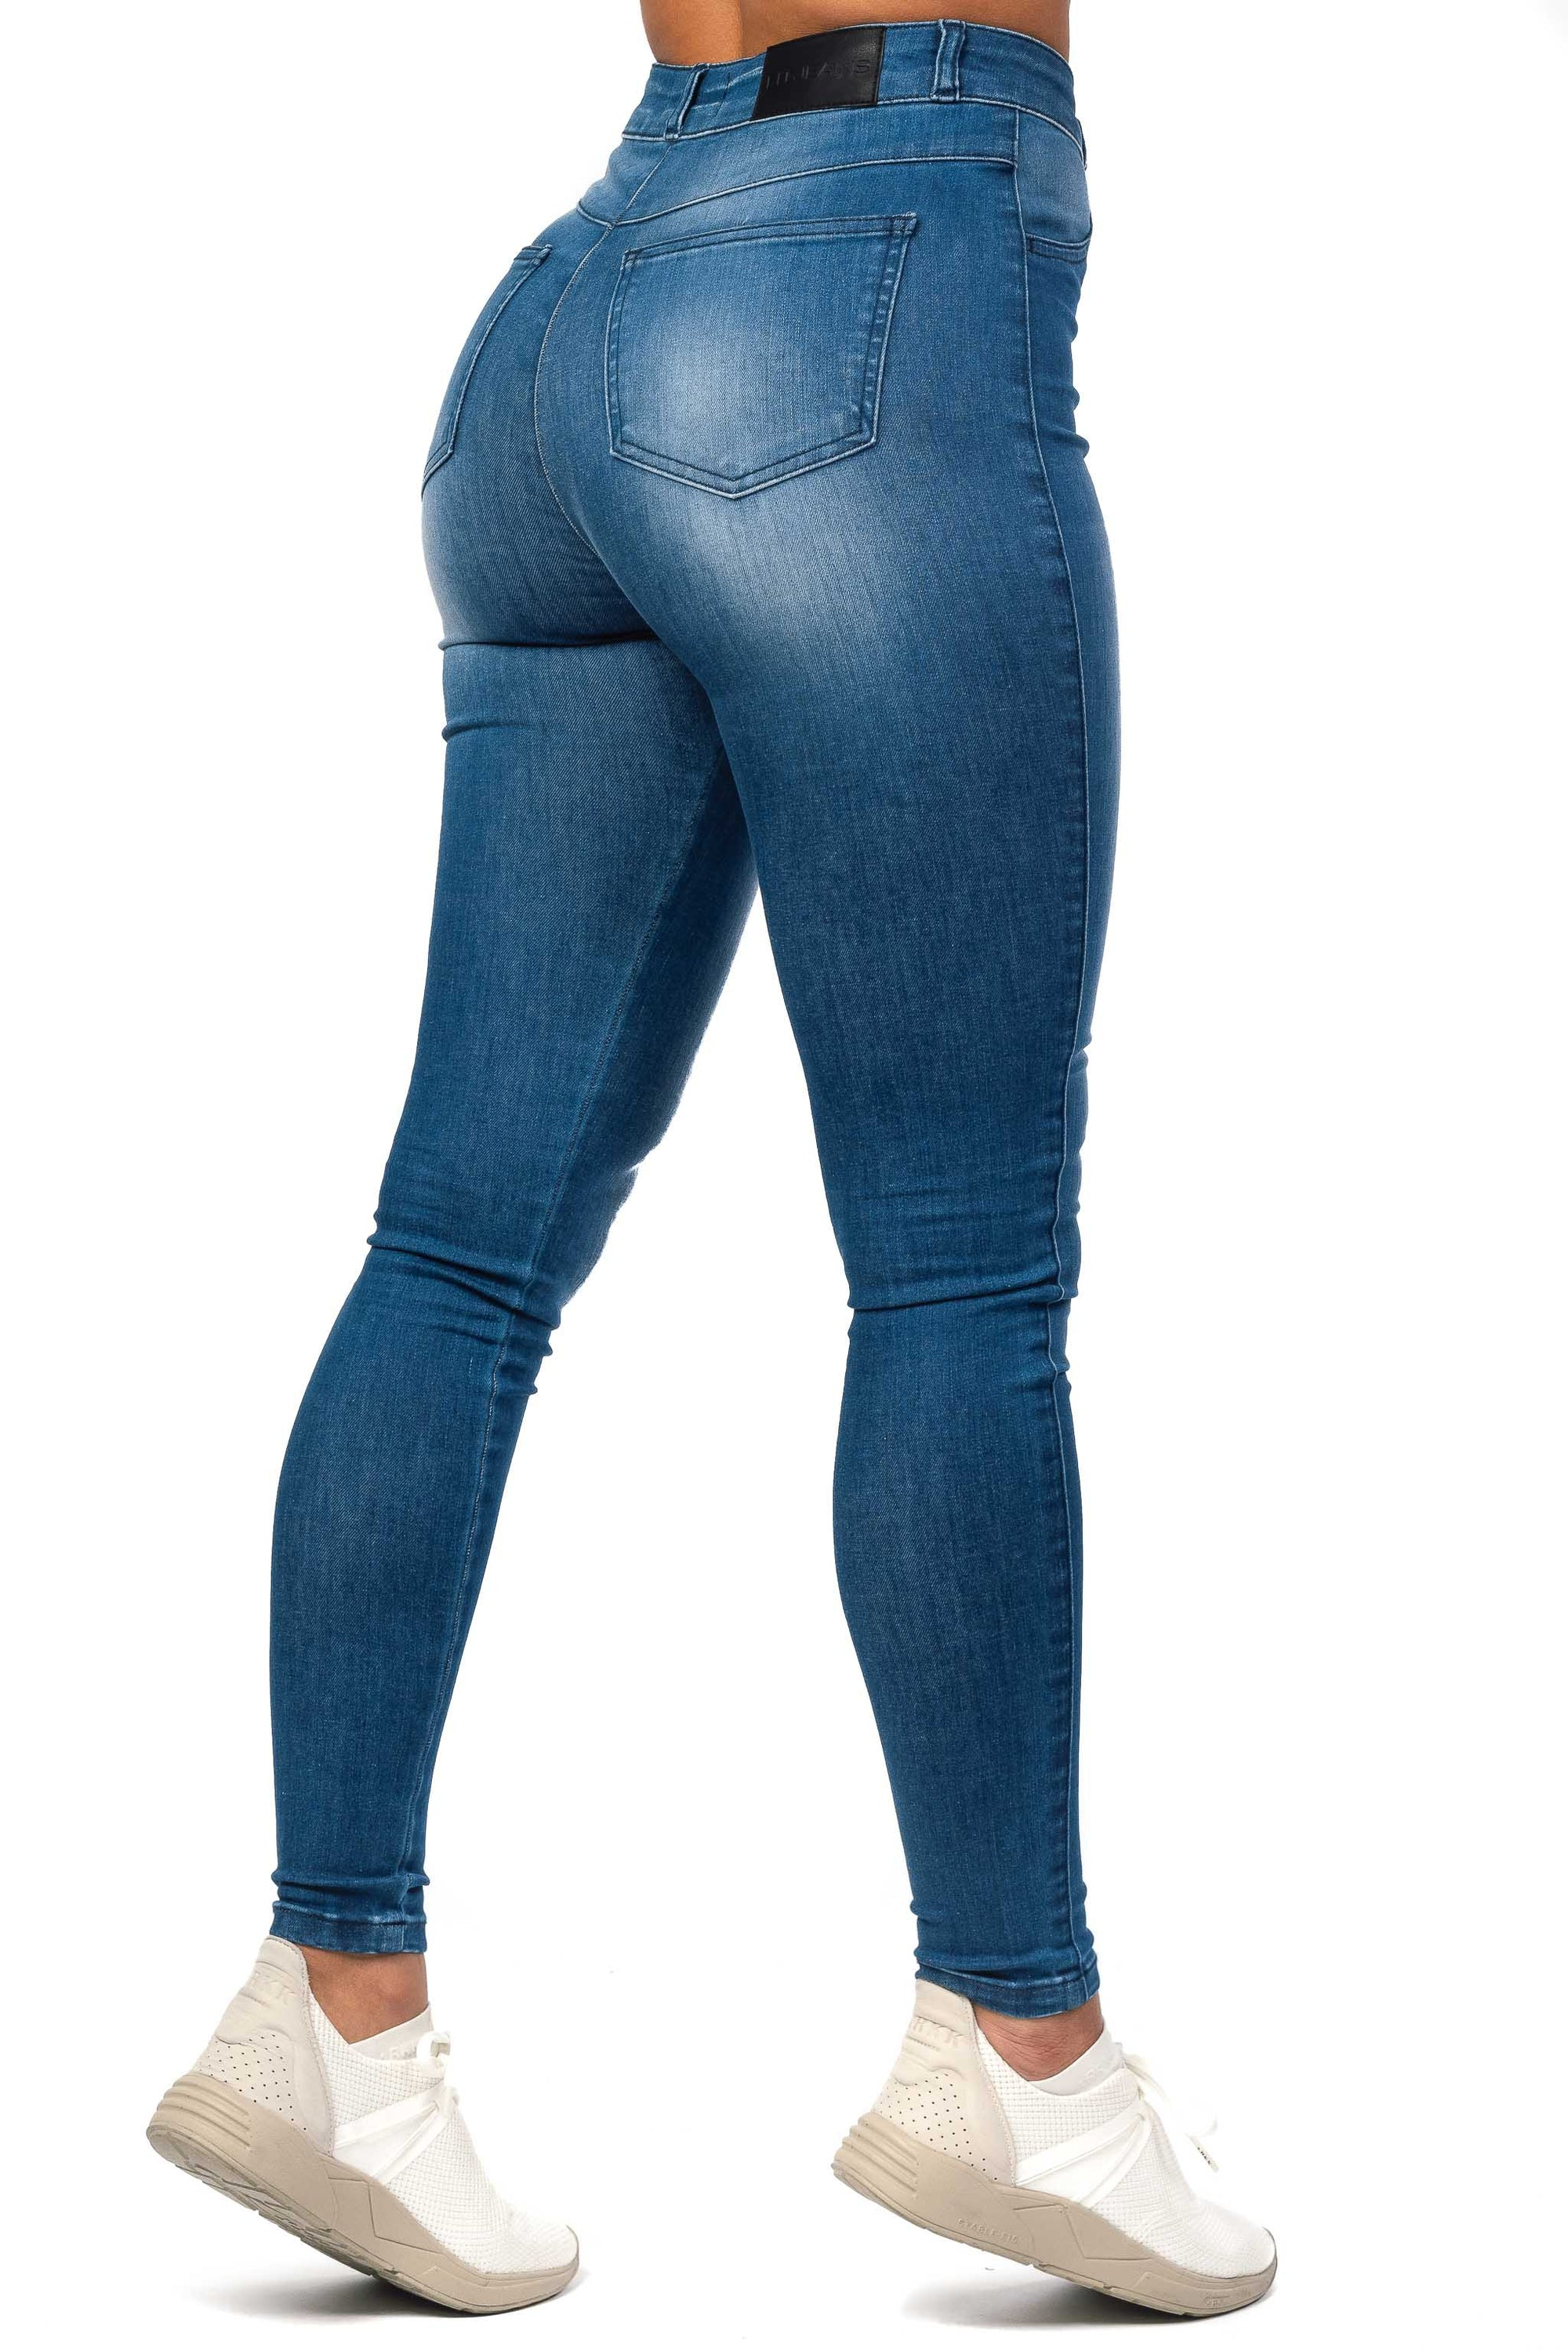 Womens Regular High Waisted Fitjeans - Azure Blue